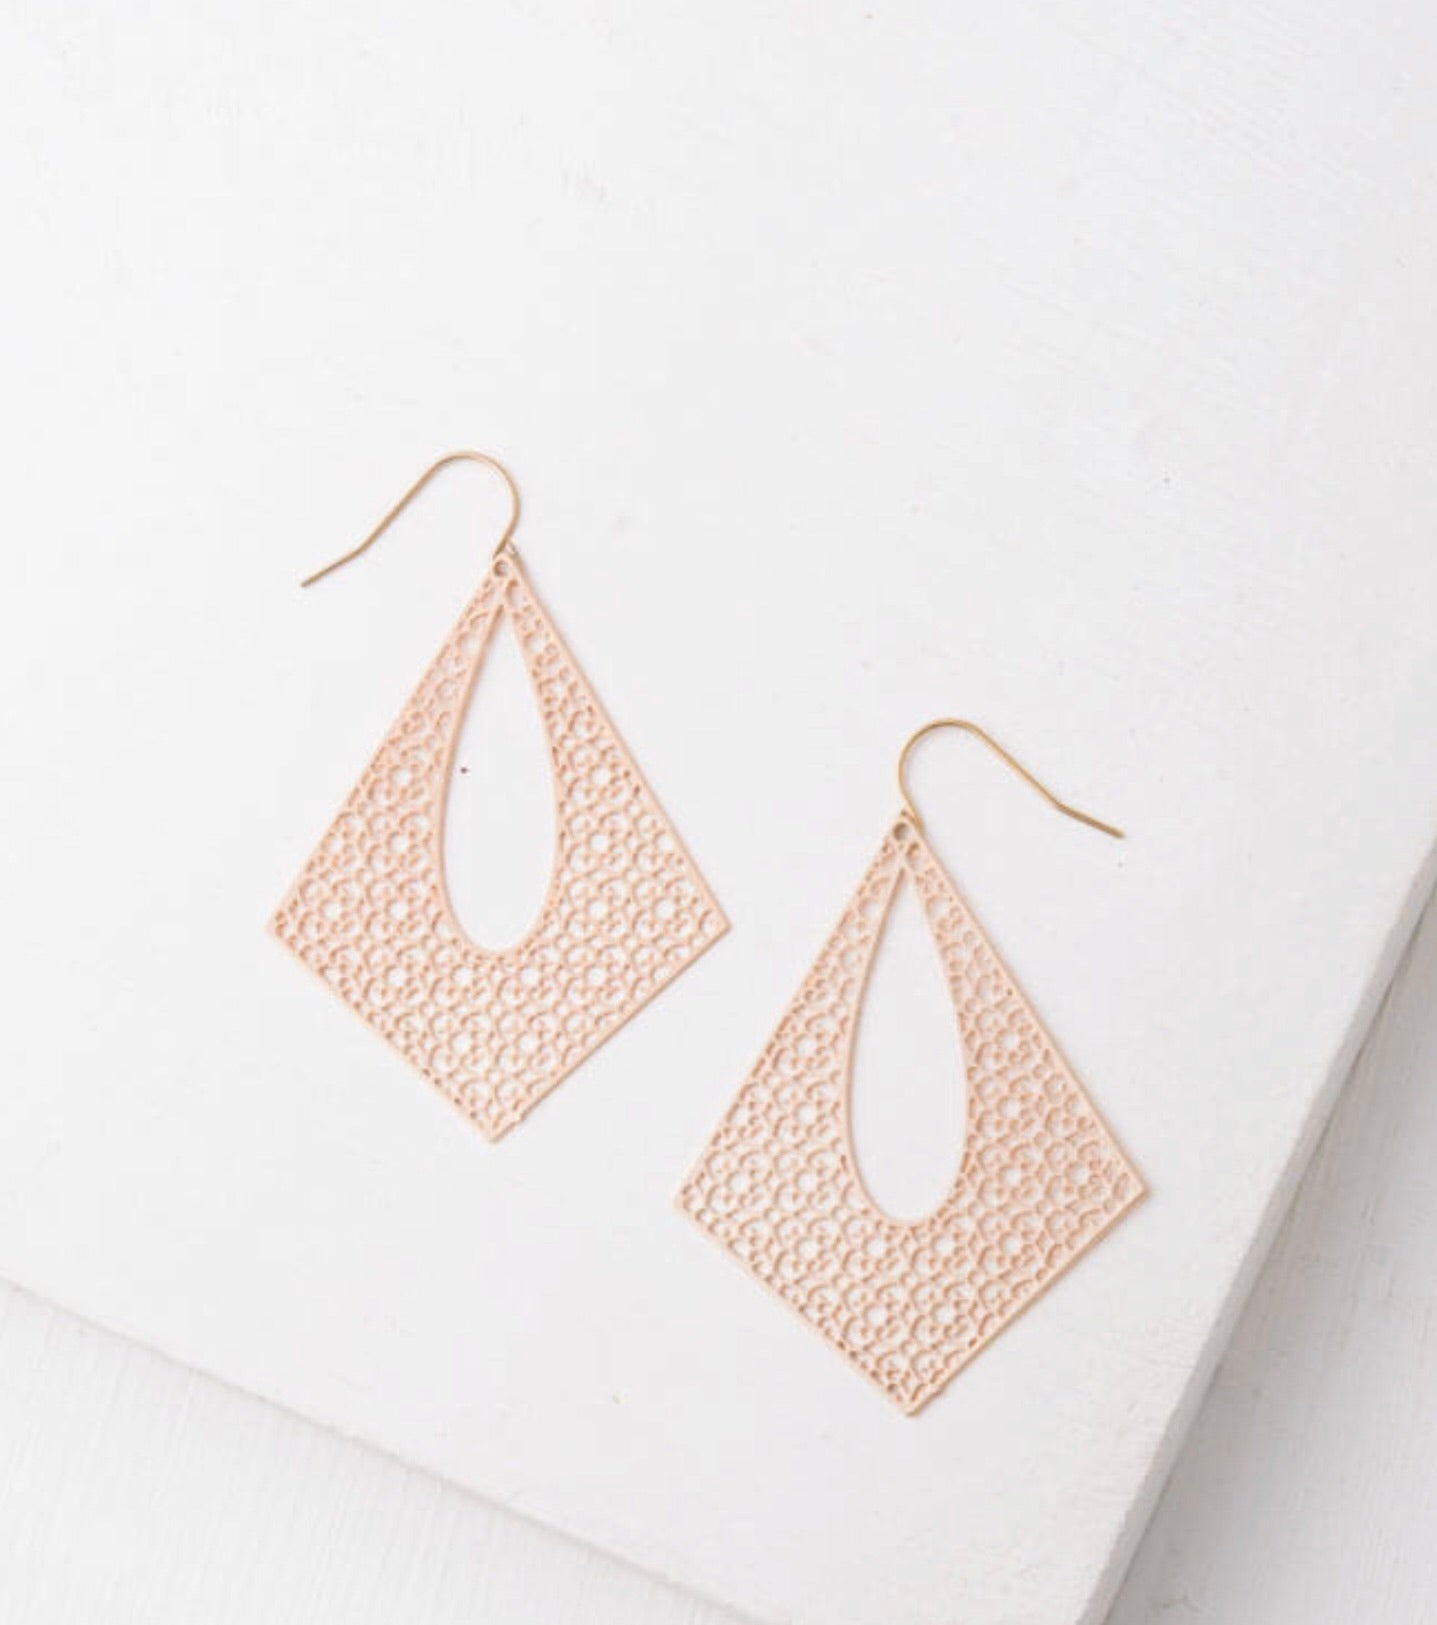 Everly Gold Filigree Earrings